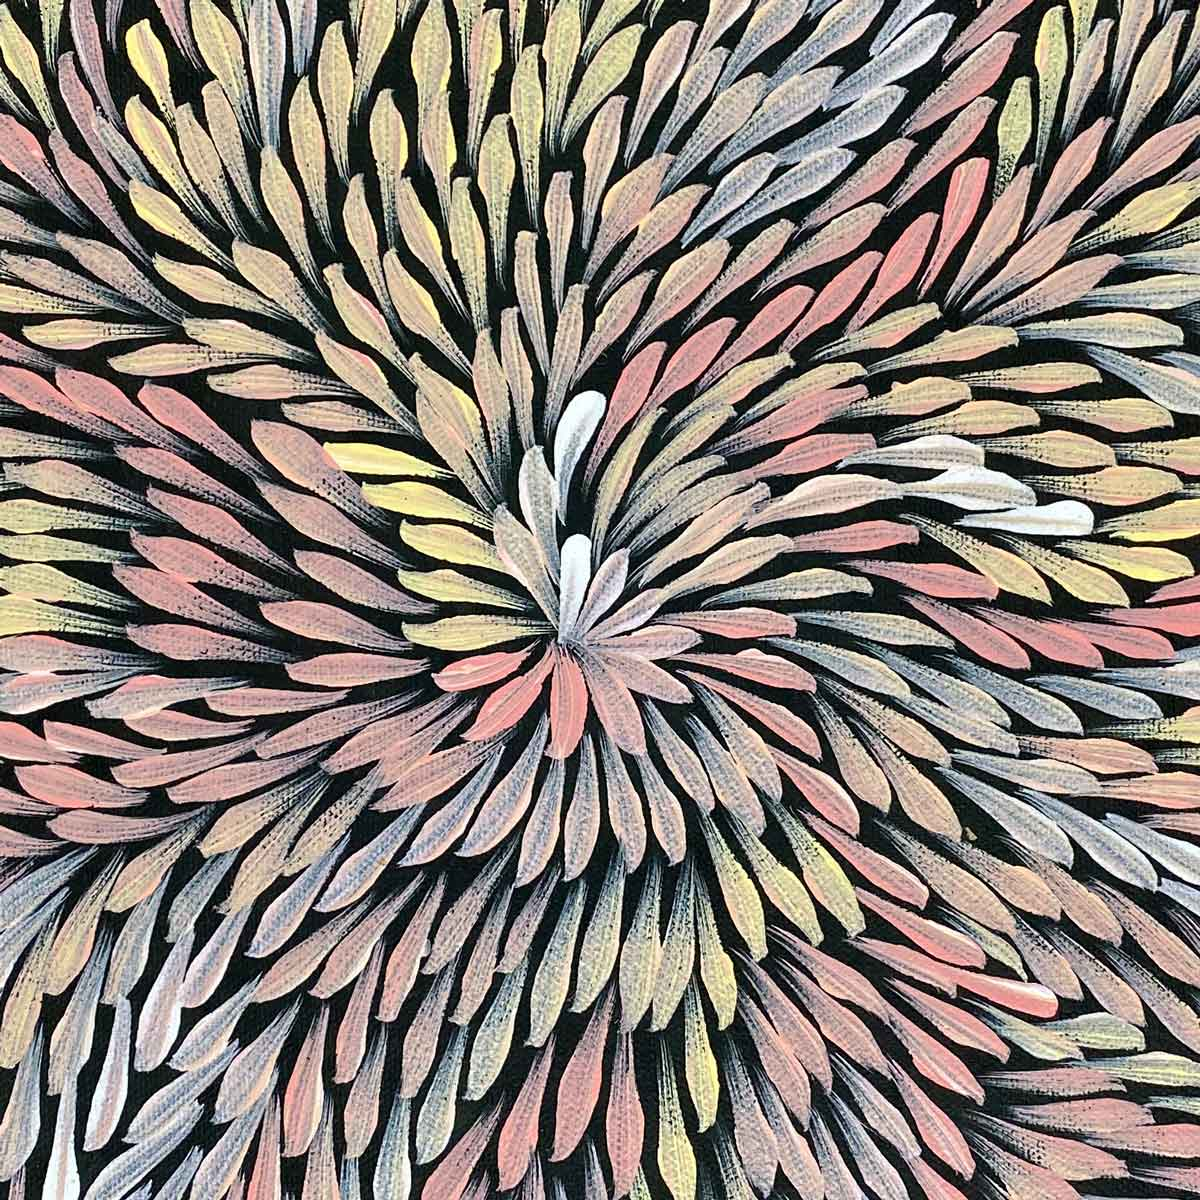 Yam Flower by Dulcie Long Pwerle. Australian Aboriginal Art.